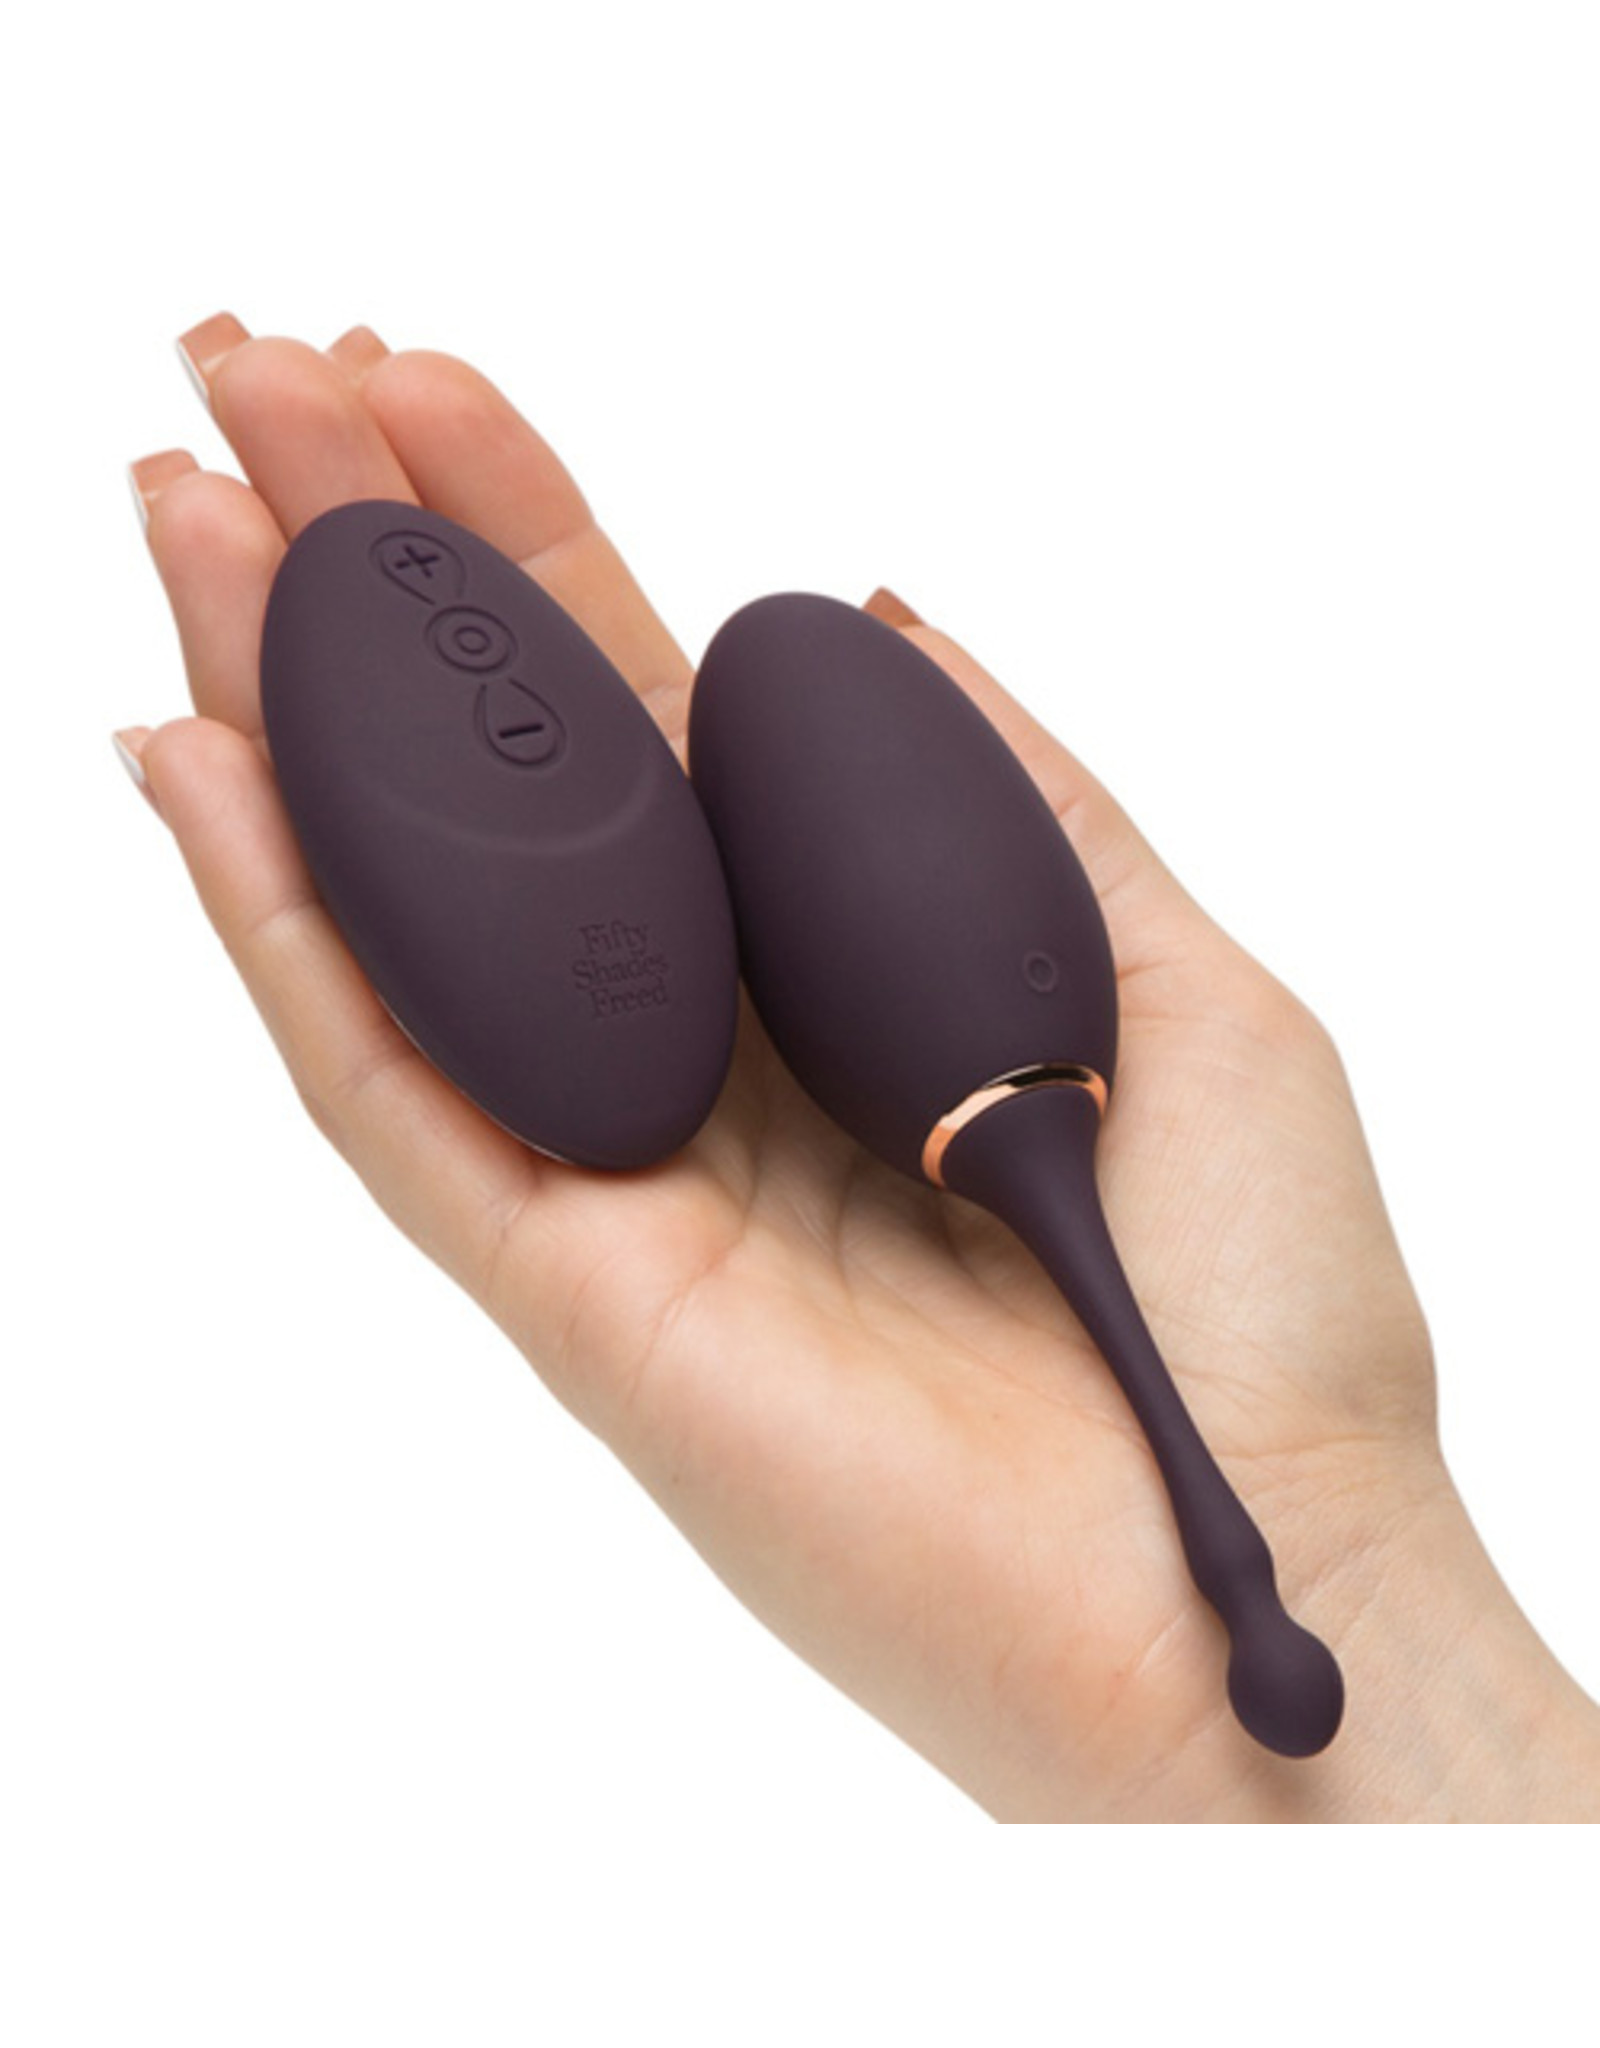 Fifty Shades Freed Fifty Shades Freed Vibratie-Eitje Met Afstandsbediening